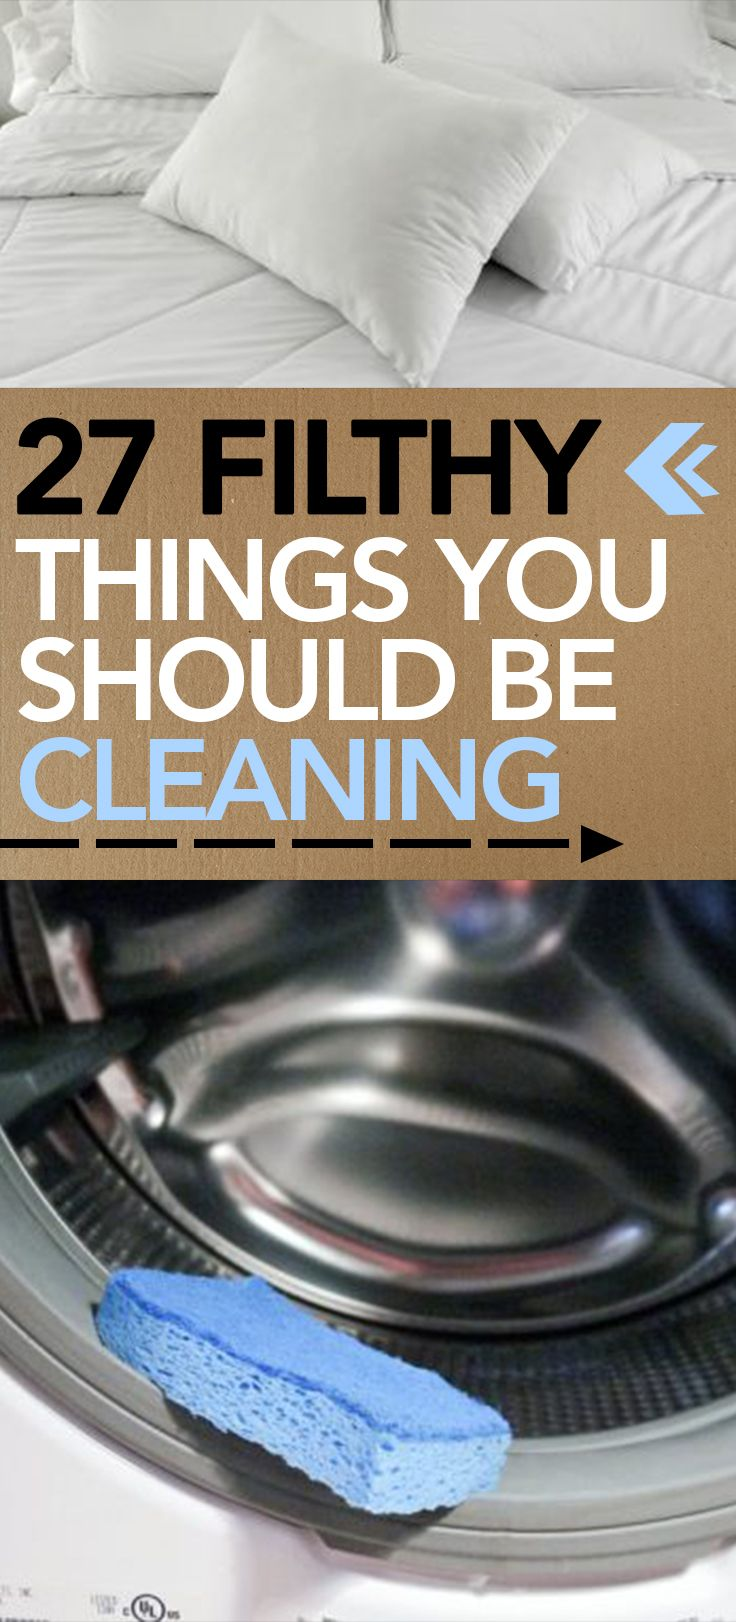 27 Filthy Things You Should Be Cleaning -